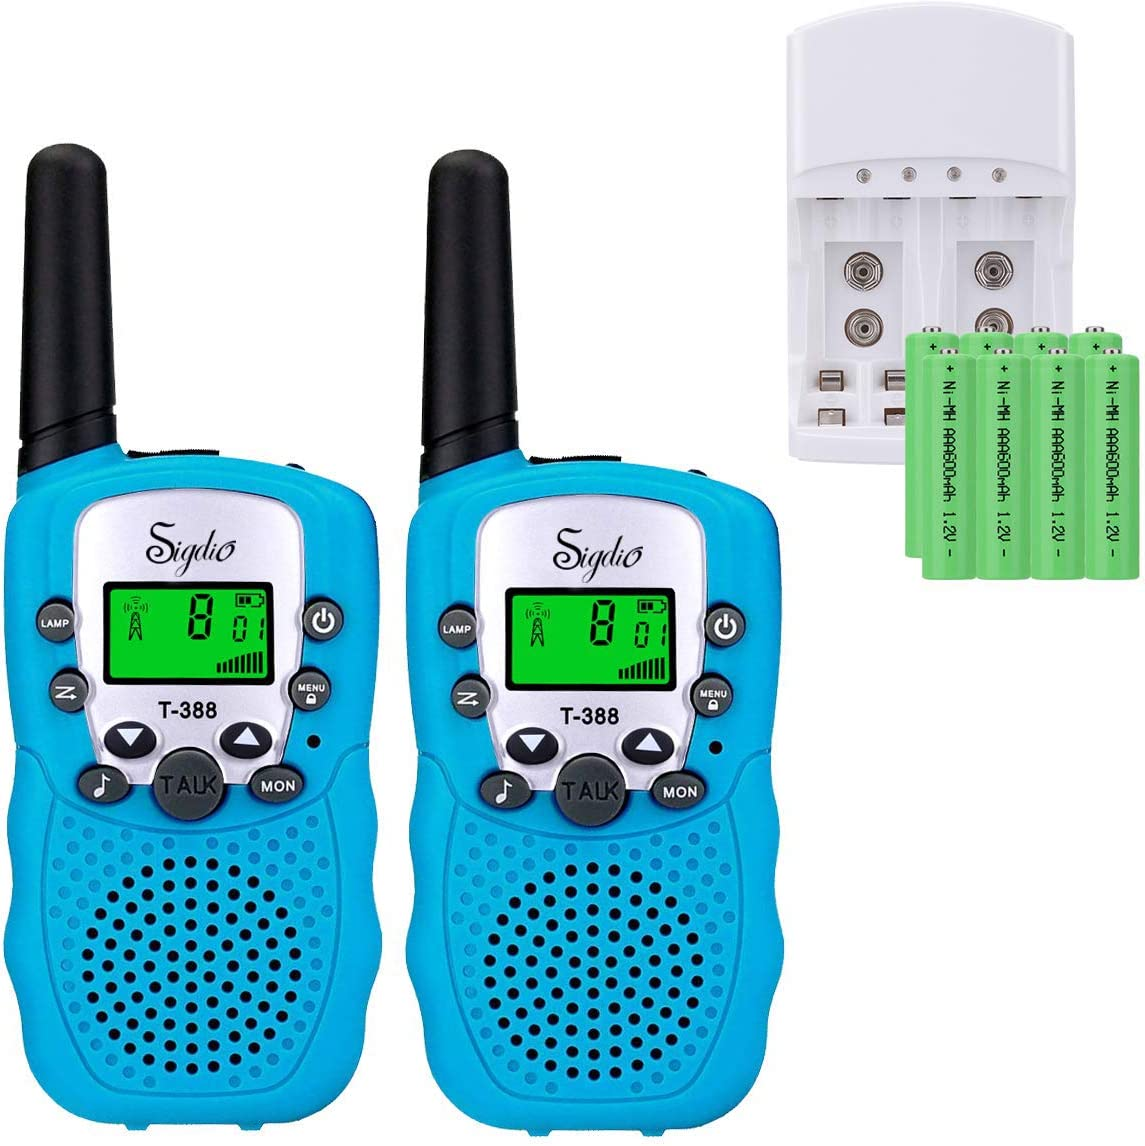 Sigdio Kids Walkie Talkies Rechargeable Walky Talky 22CH FRS 2 Way Radio Kids Toy with Multi-Charger Rechargeable Batteries VOX and Torch Blue, 8 rechargeable batteries